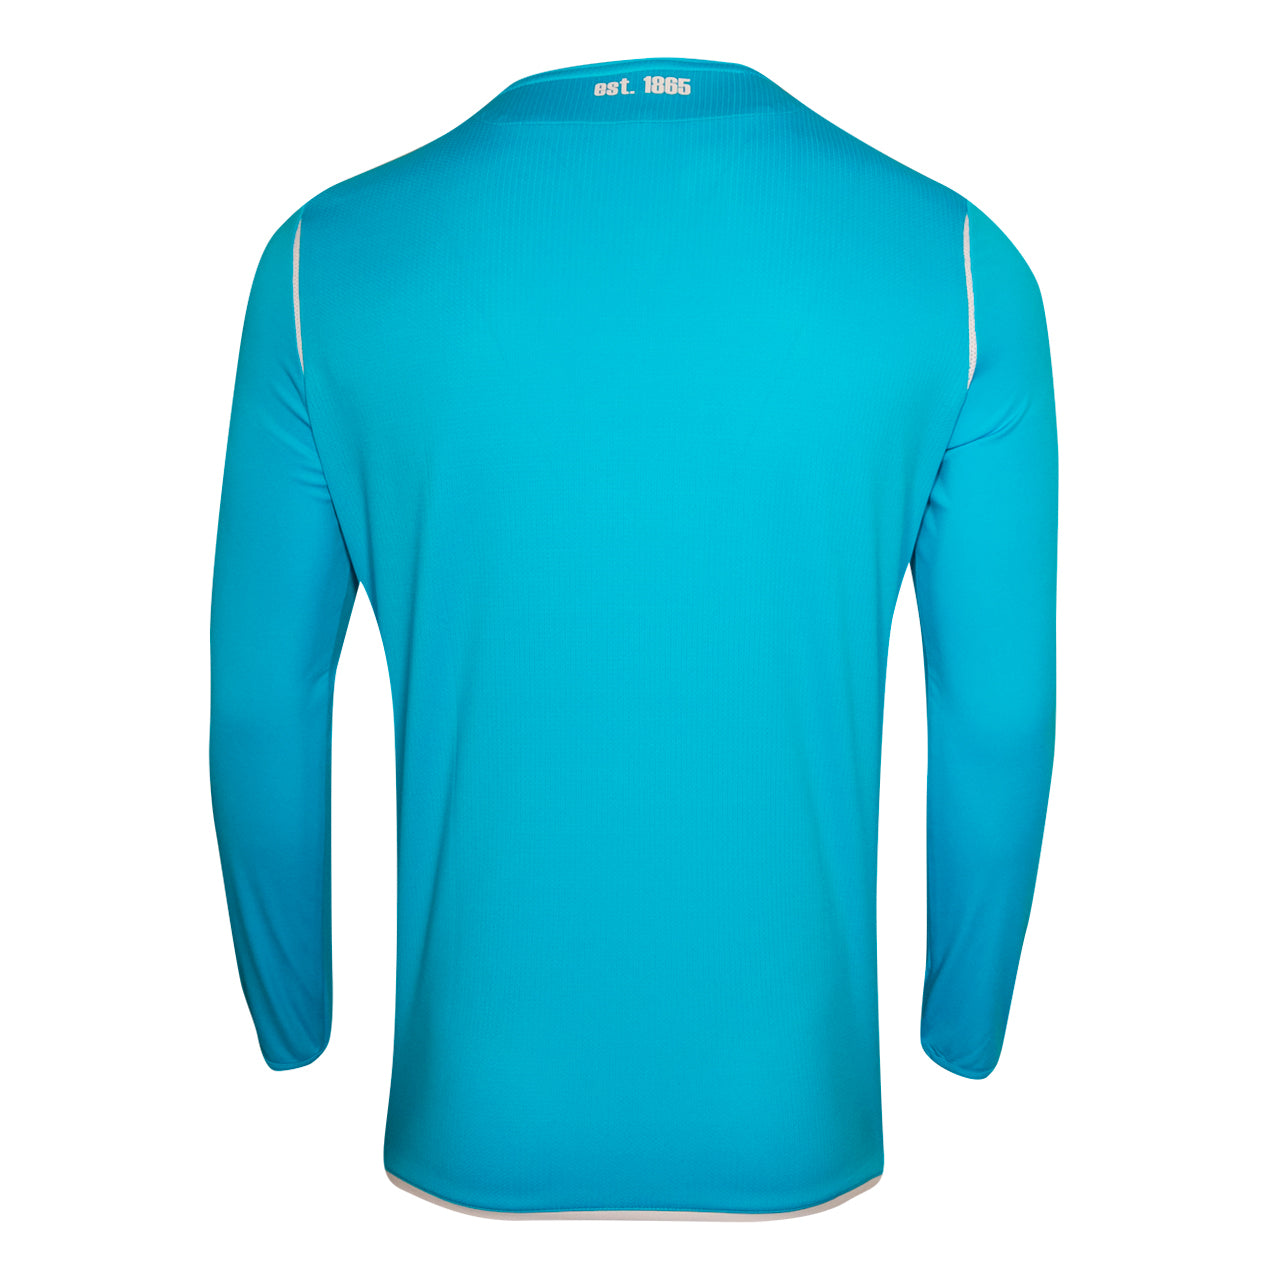 NFFC Junior Blue Goalkeeper Shirt 2019/20